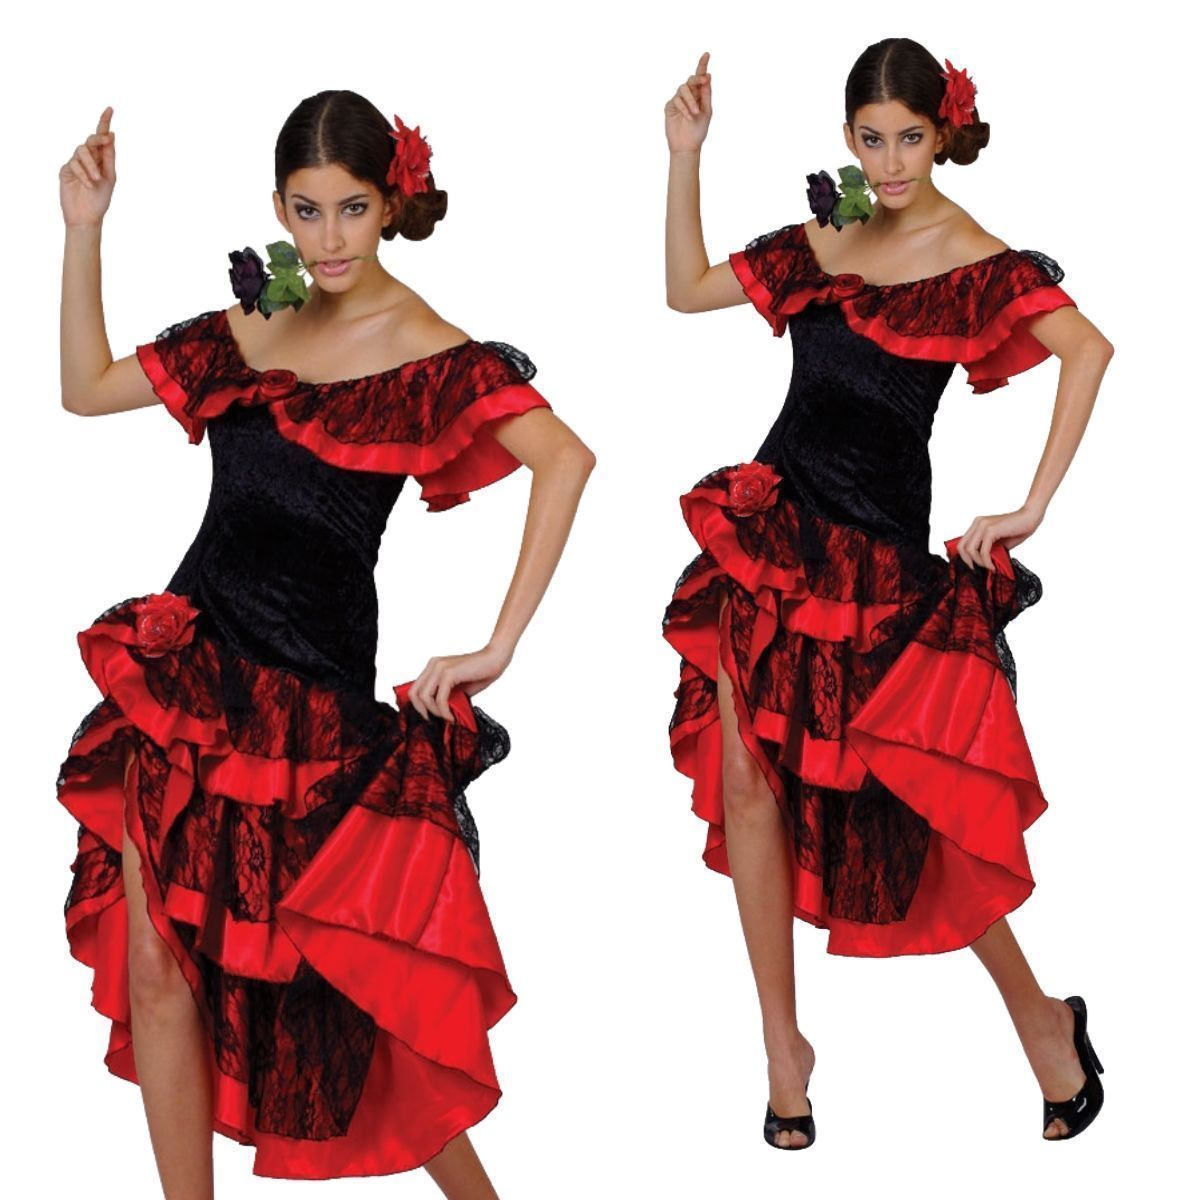 Ladies Spanish Style Dancing Fancy Dress Costume Black /& Red Outfit UK 10-14